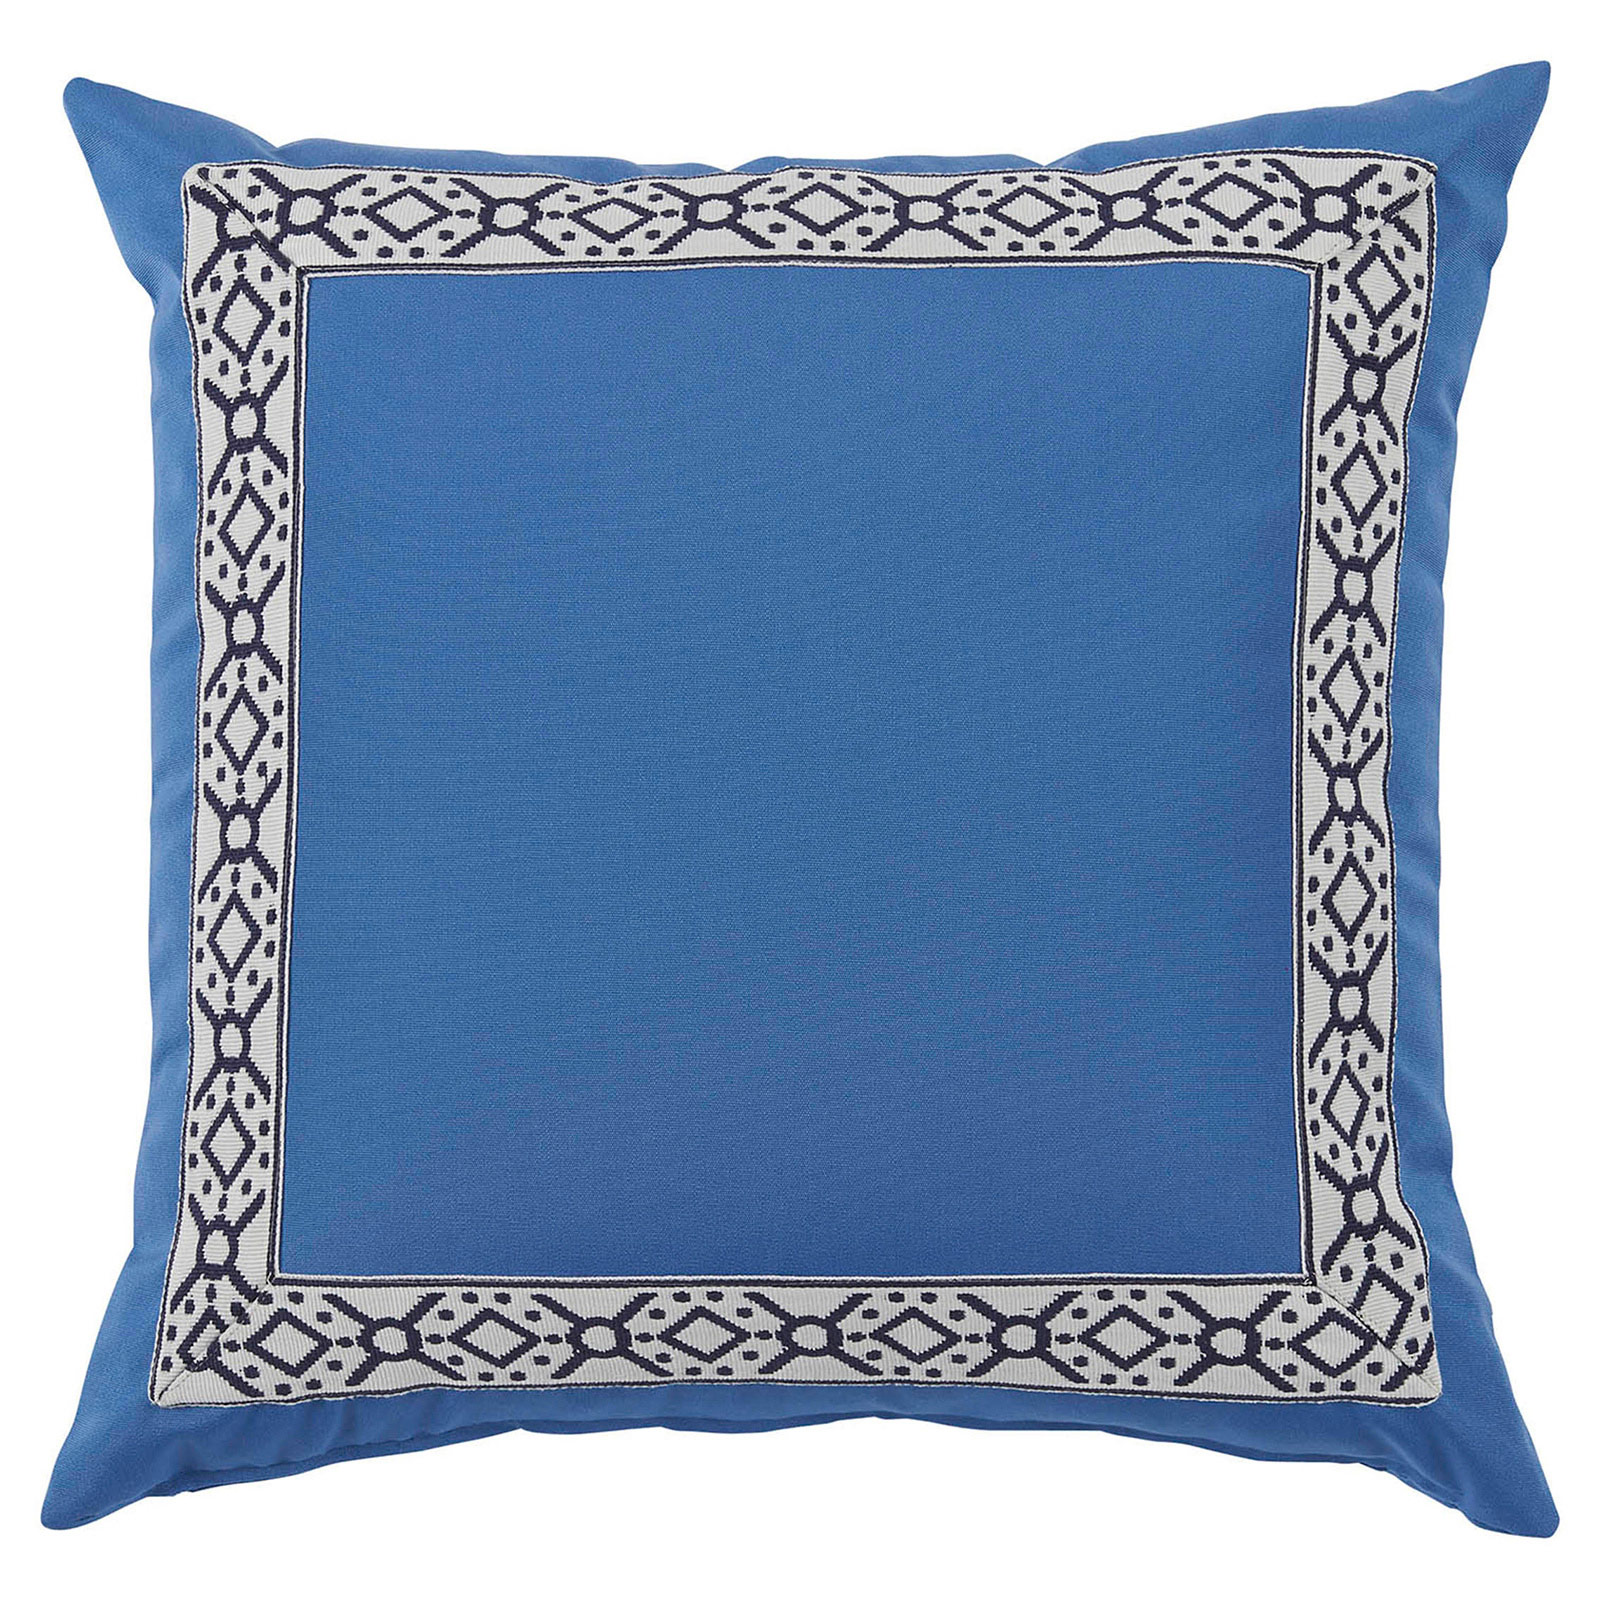 Perri Modern Global Trim Powder Blue Outdoor Pillow - 22x22